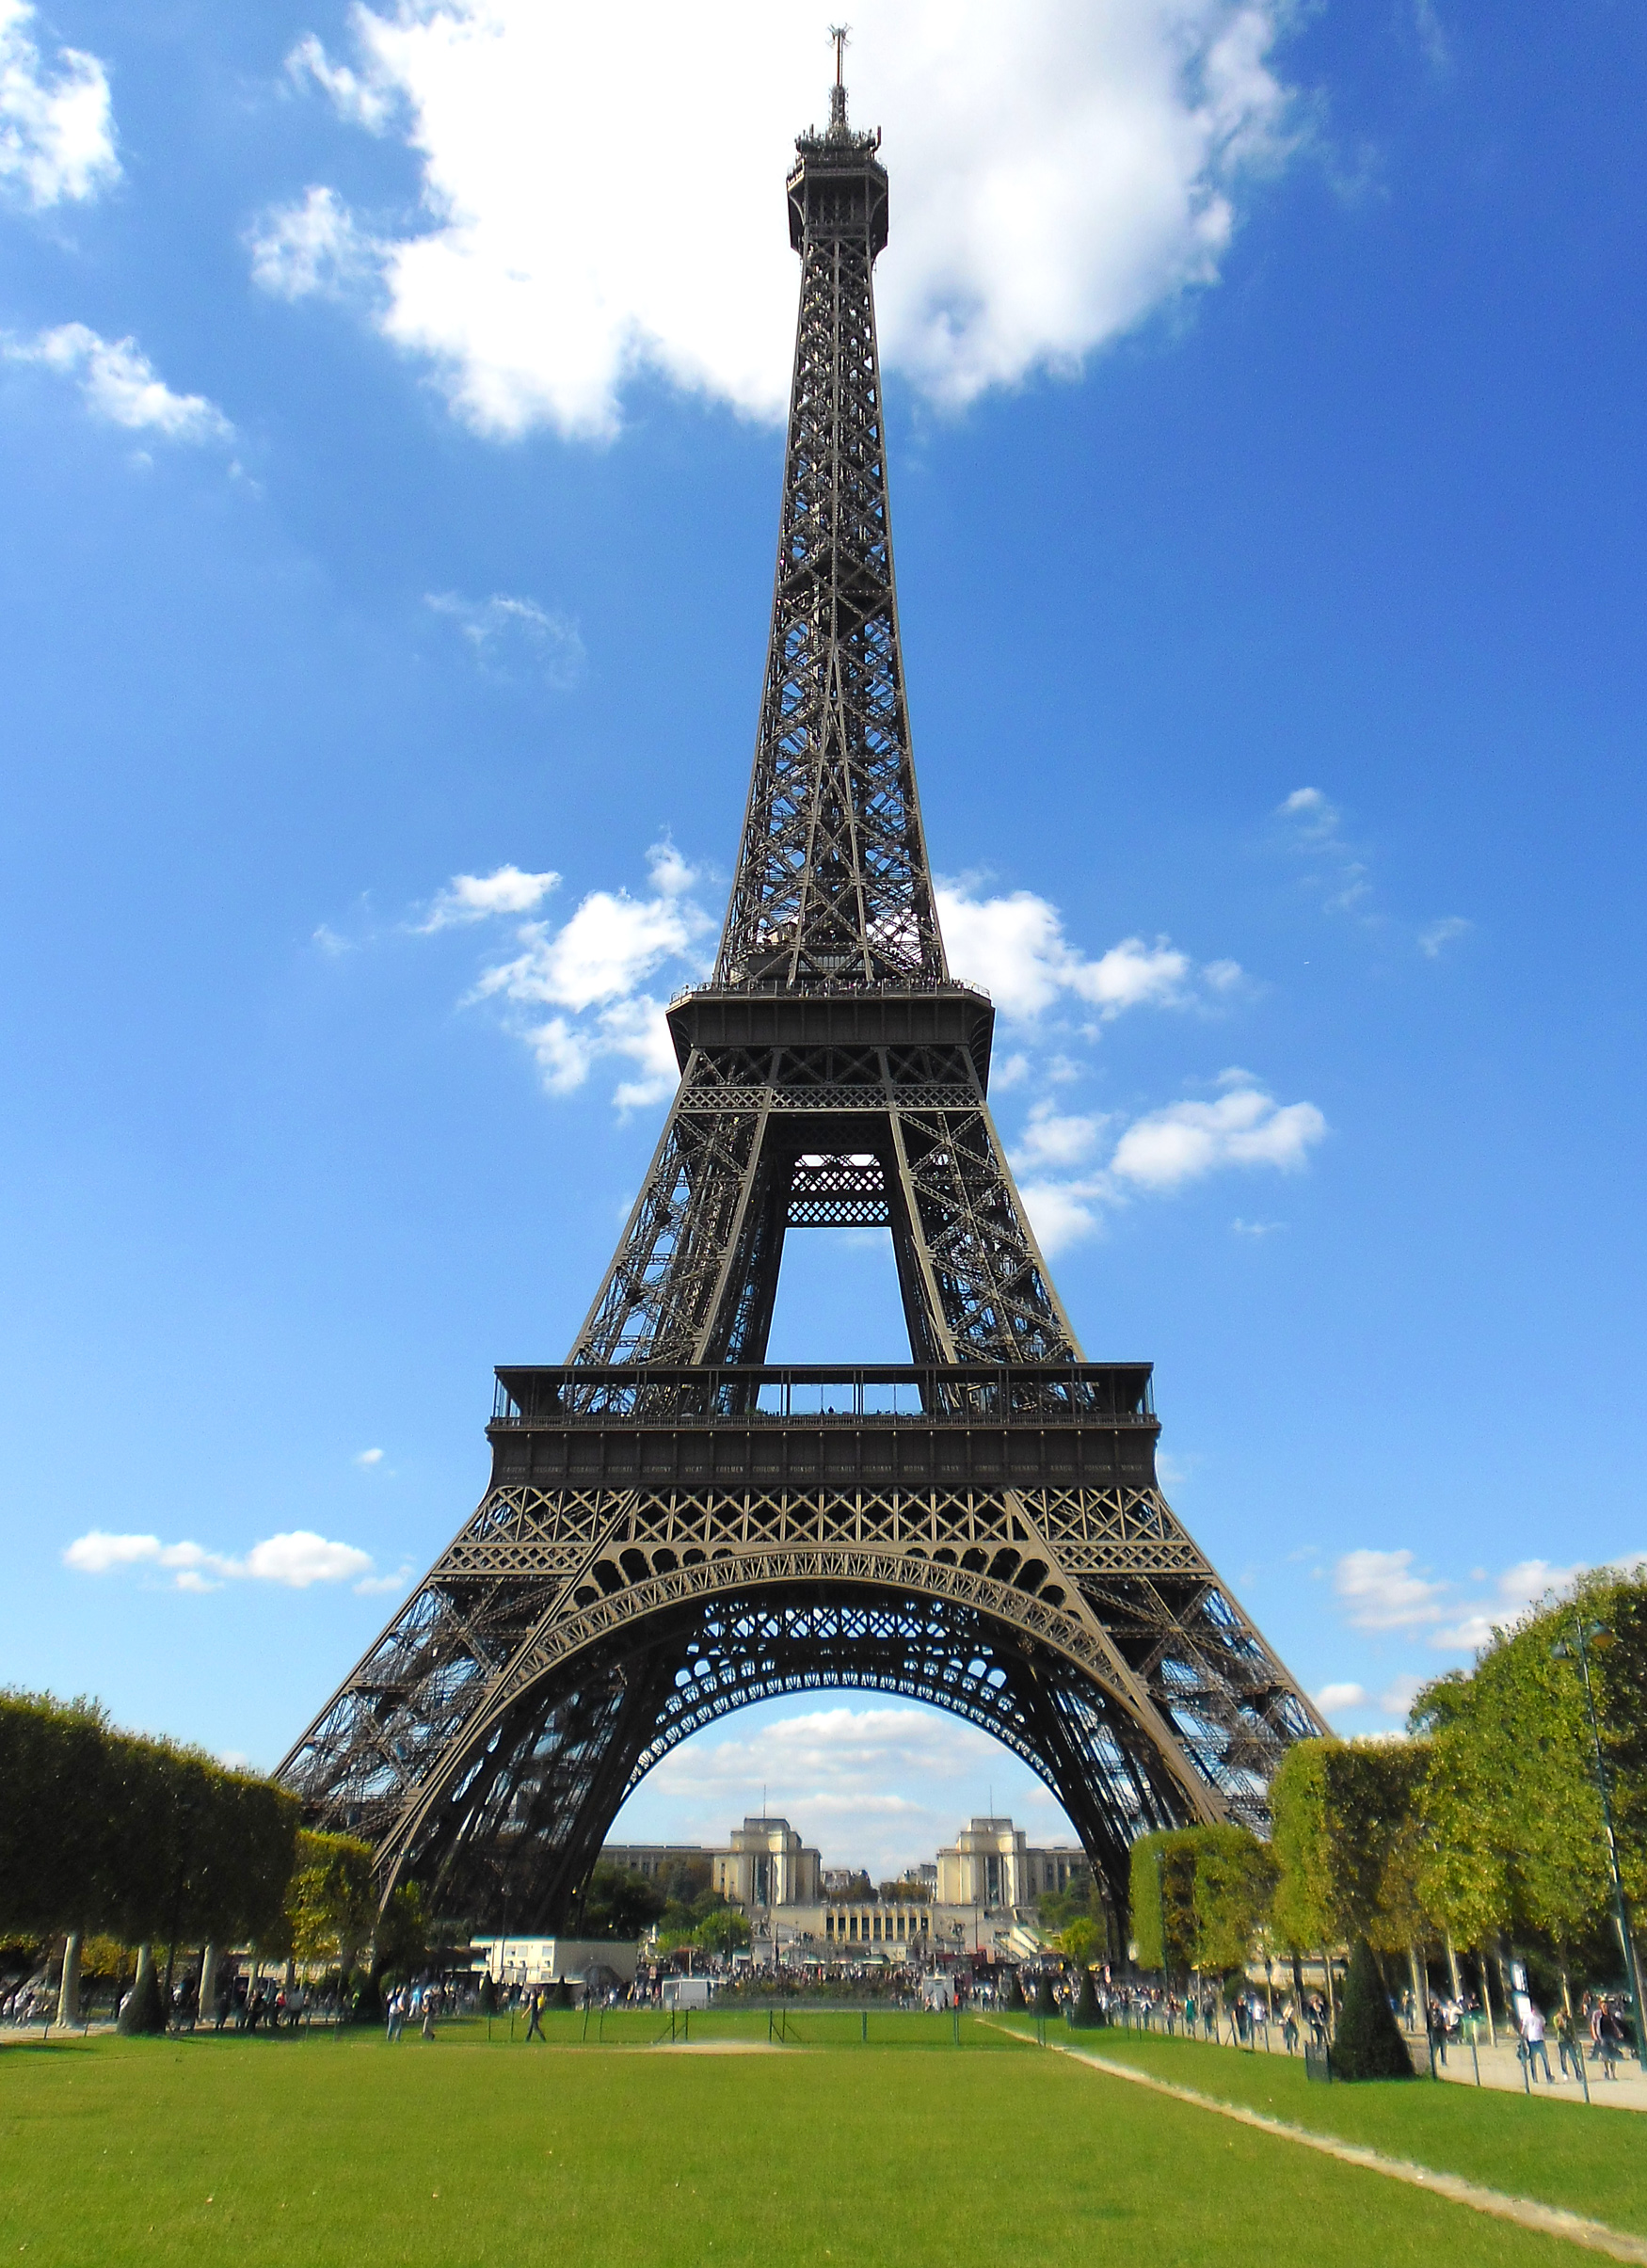 The eiffel tower in paris - france photo